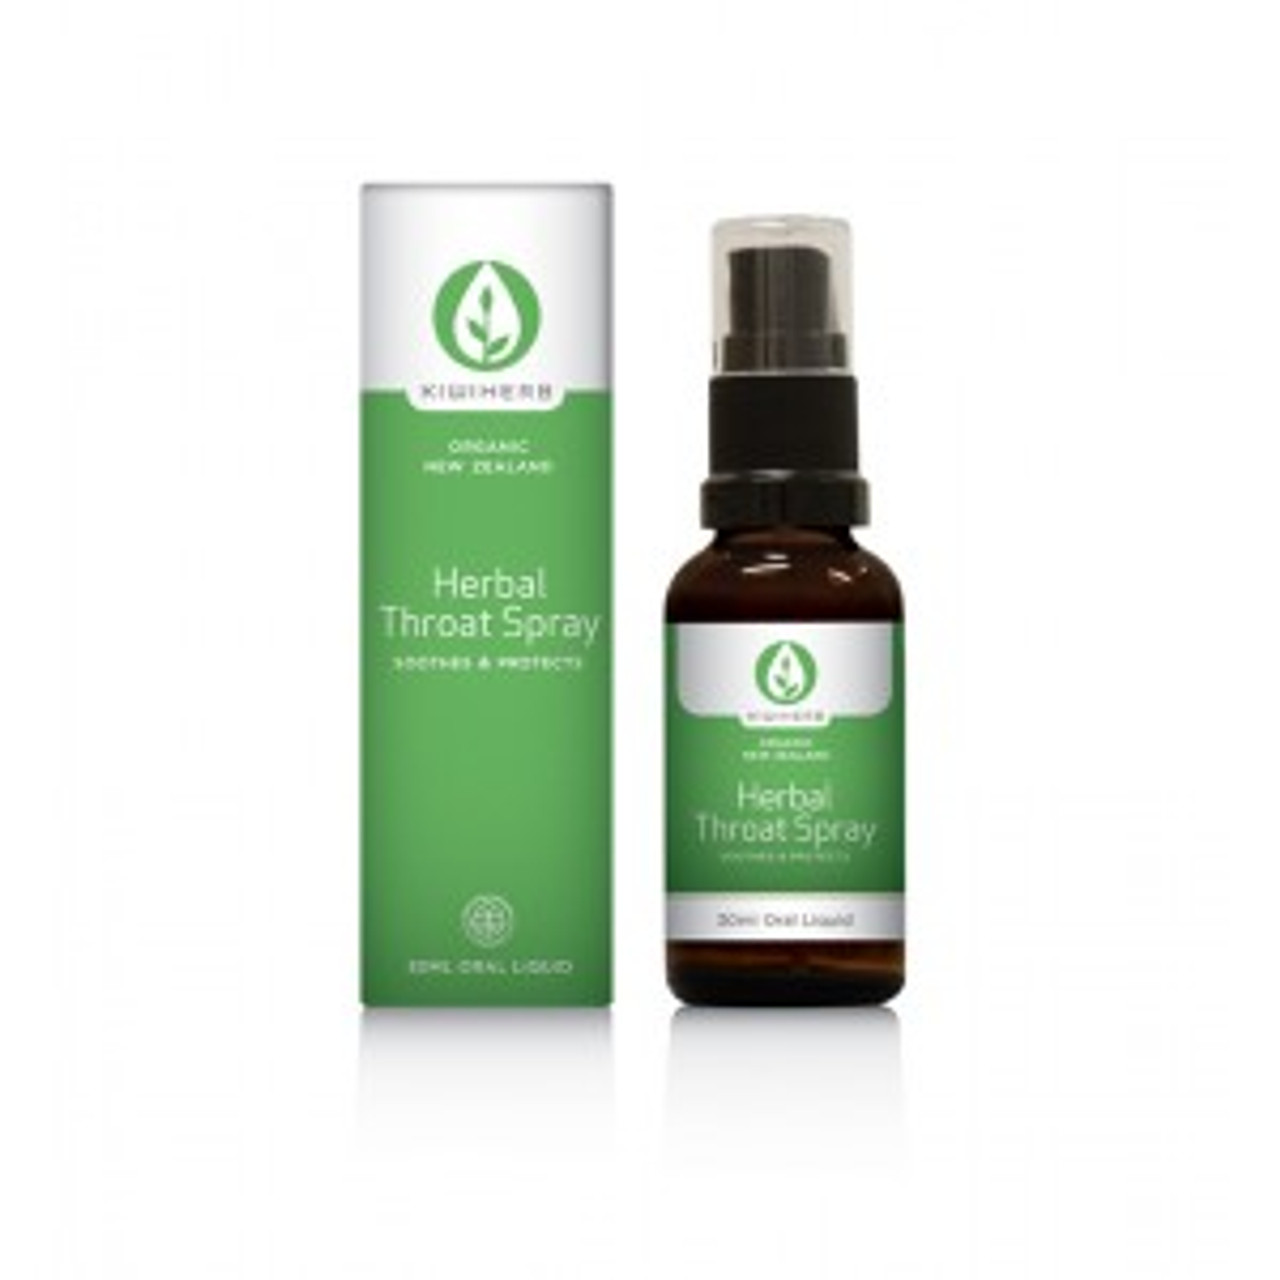 Herbal Throat Spray 30ml